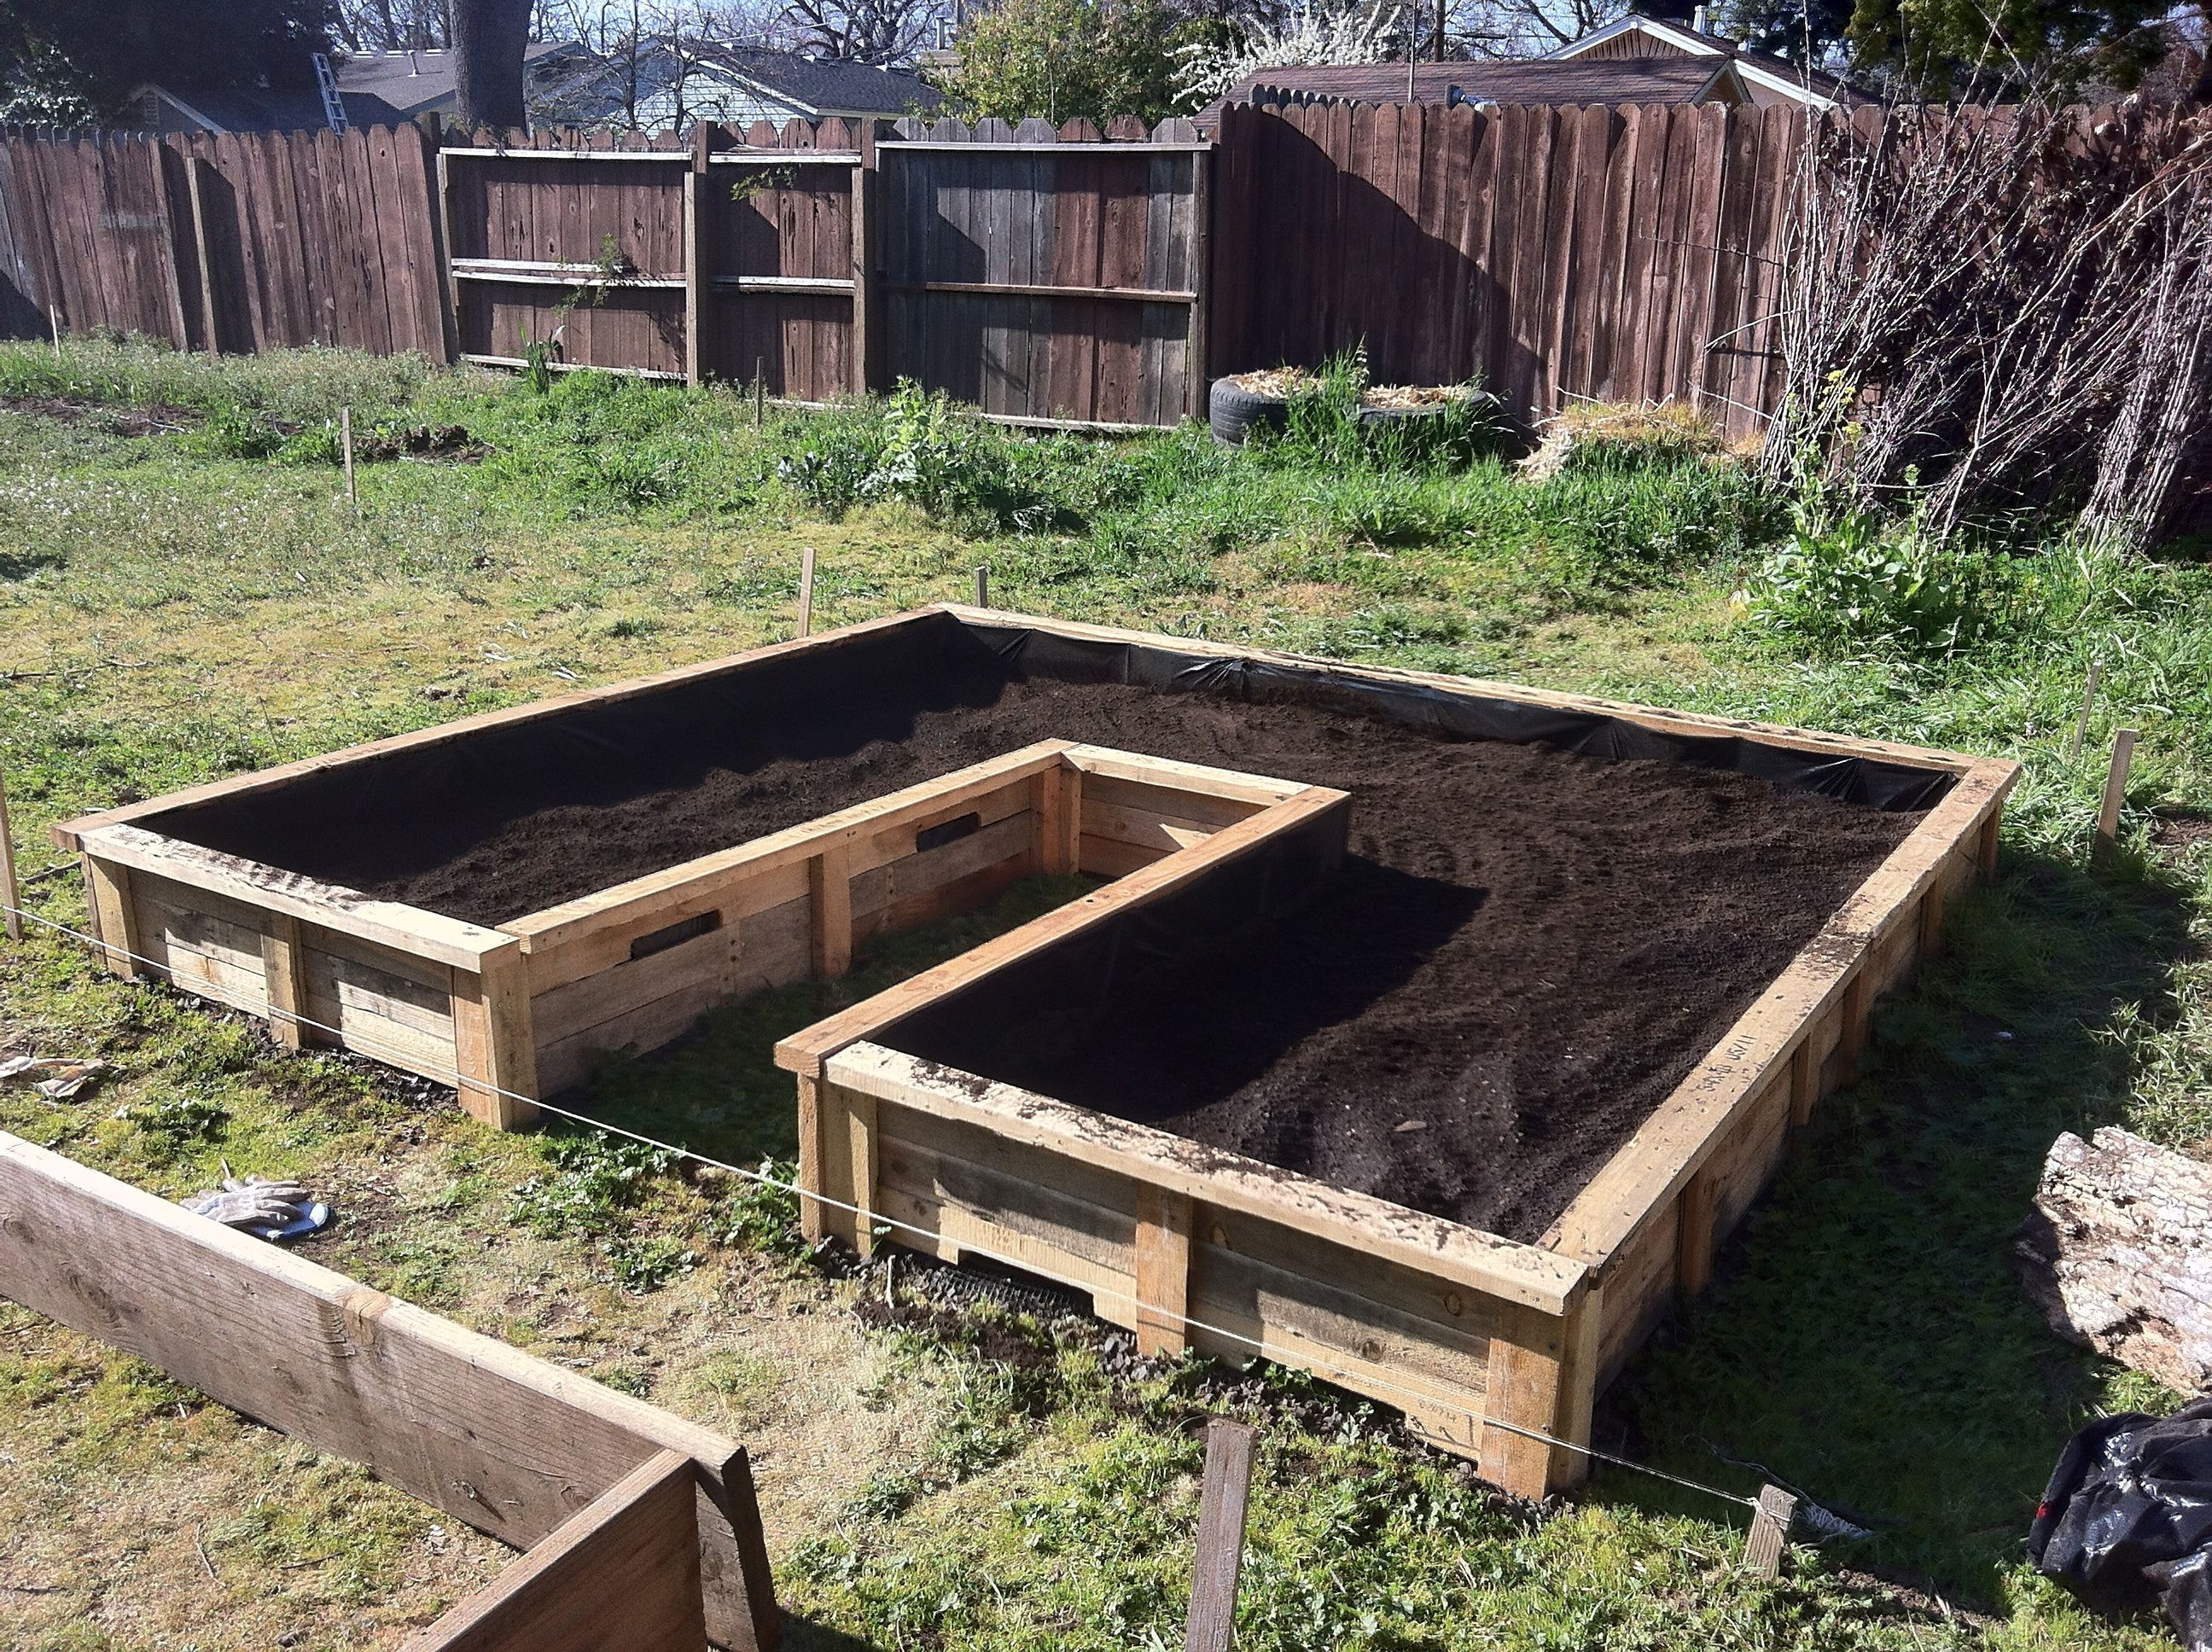 wooden pallet raised bed garden Pallets garden, Small